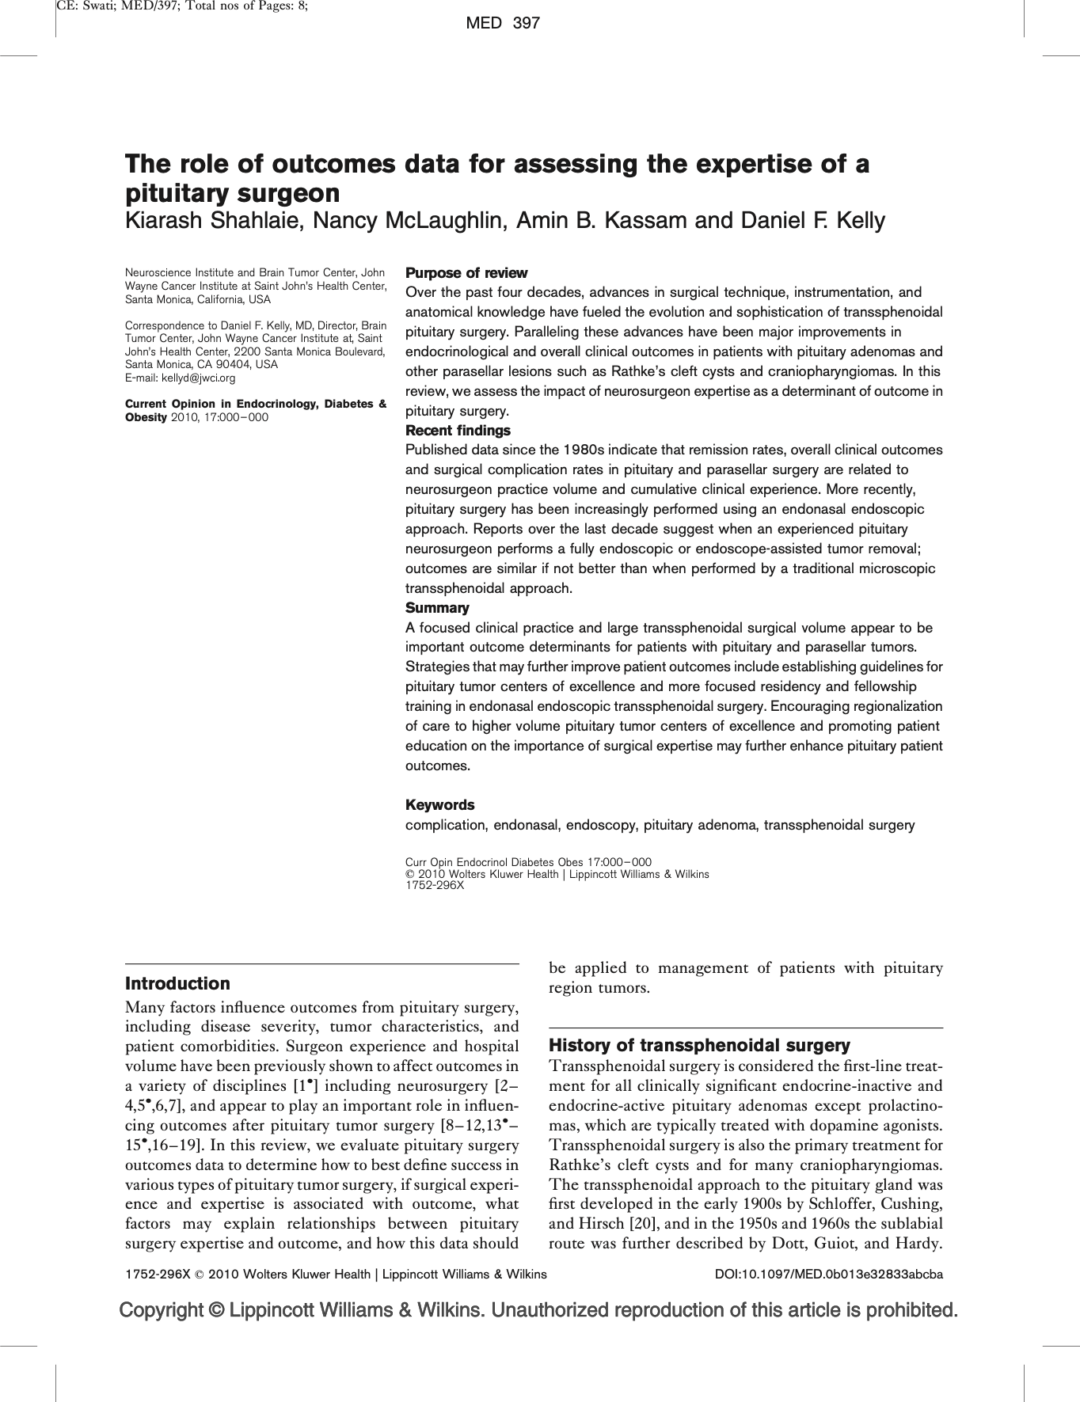 The role of outcomes data for assessing the expertise of a pituitary surgeon